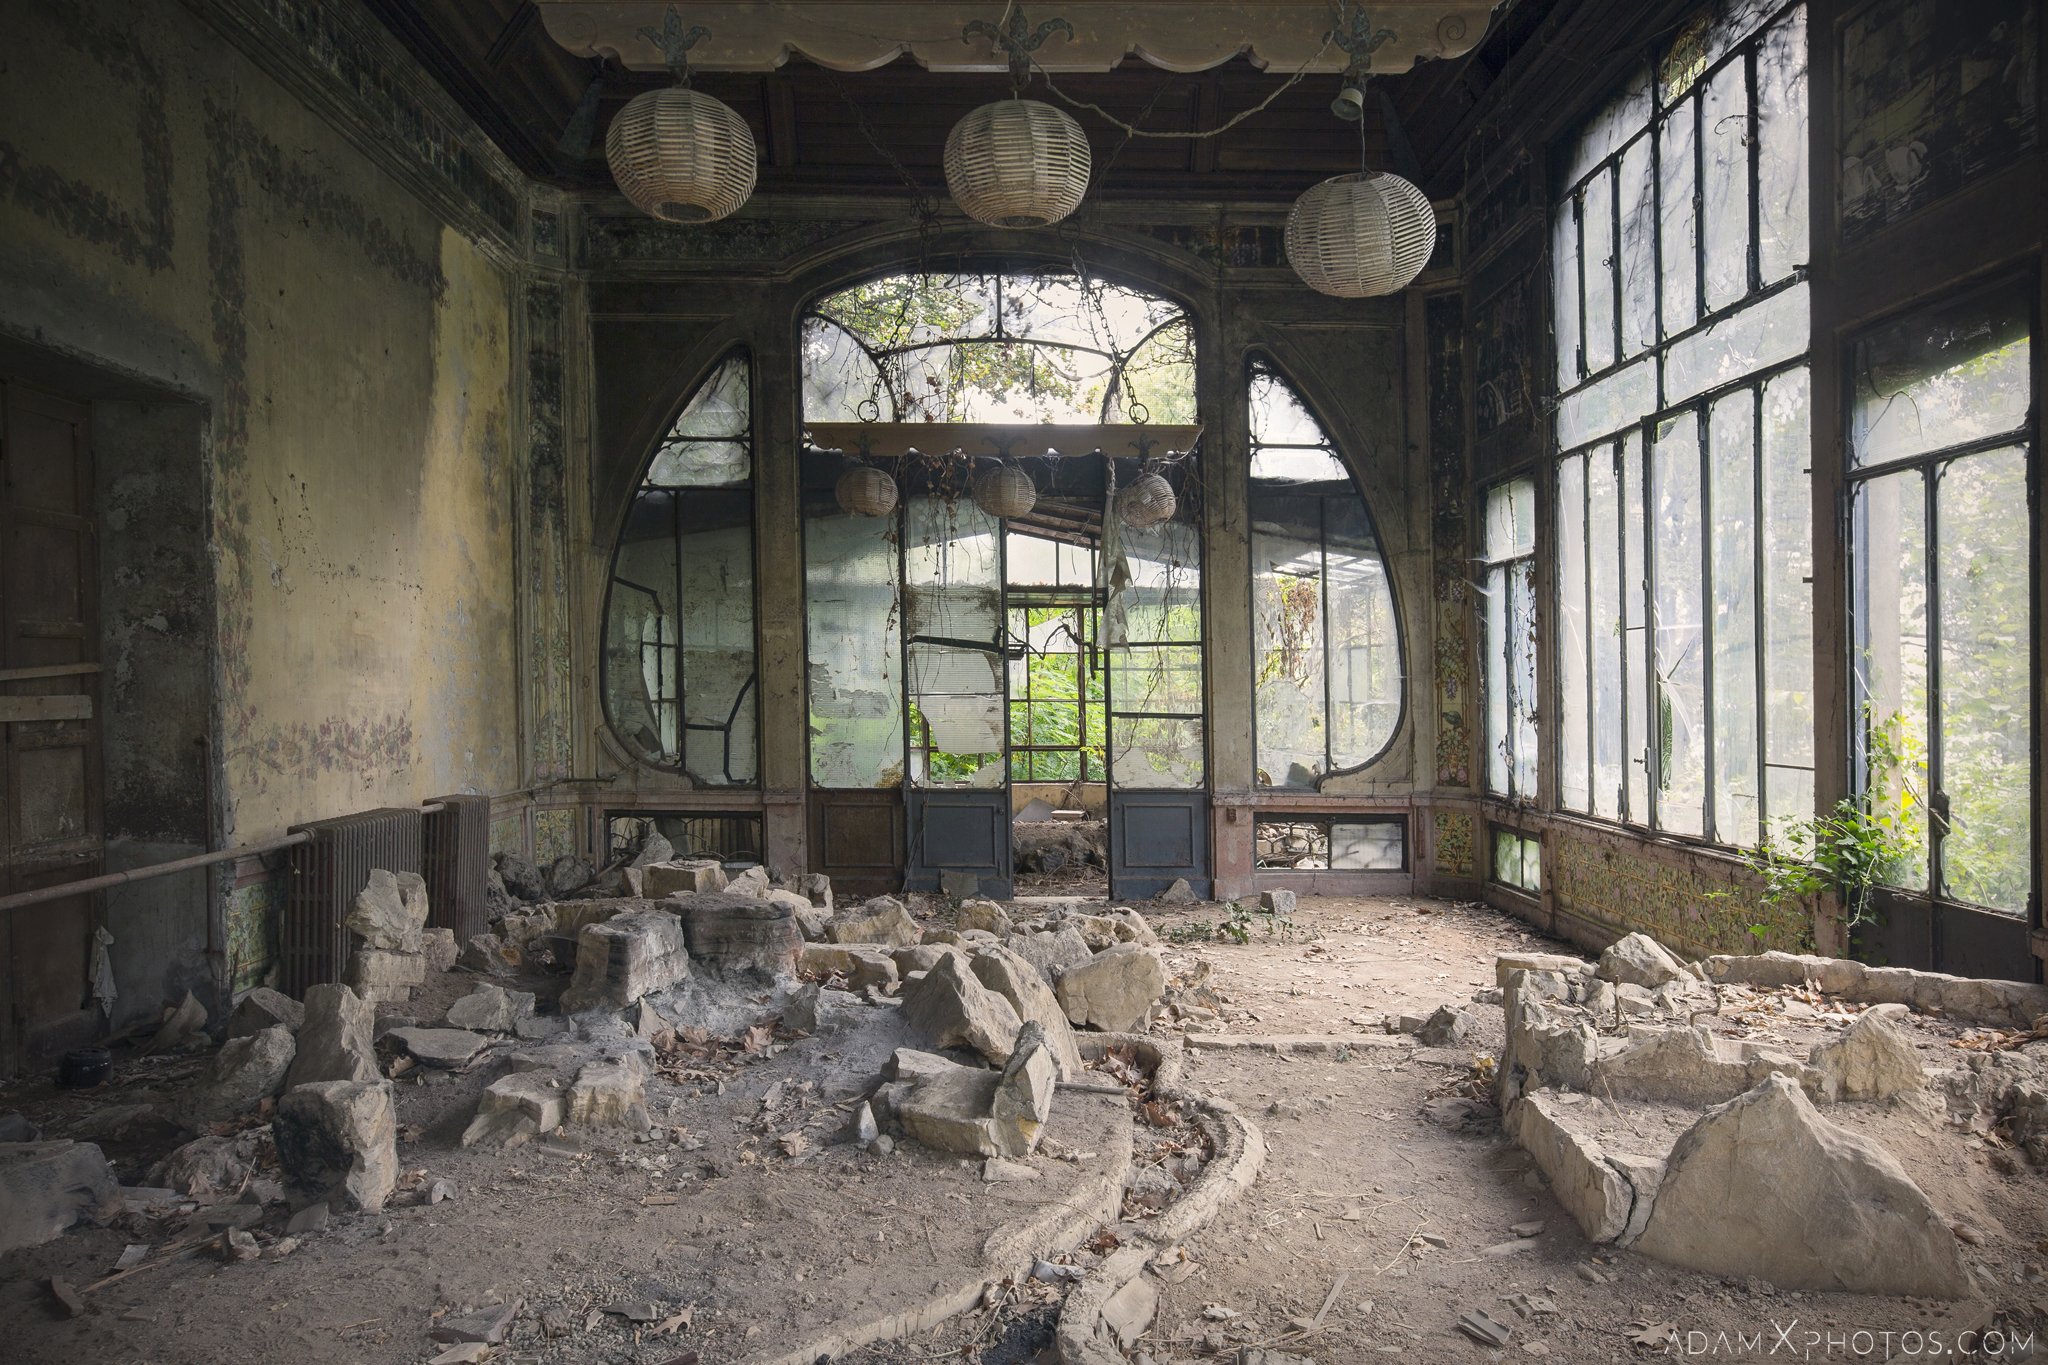 Greenhouse Orangery Garden summer House ornate windows rockery Villa Pesenti P Urbex Adam X Urban Exploration Italy Italia Access 2016 Abandoned decay lost forgotten derelict location creepy haunting eerie